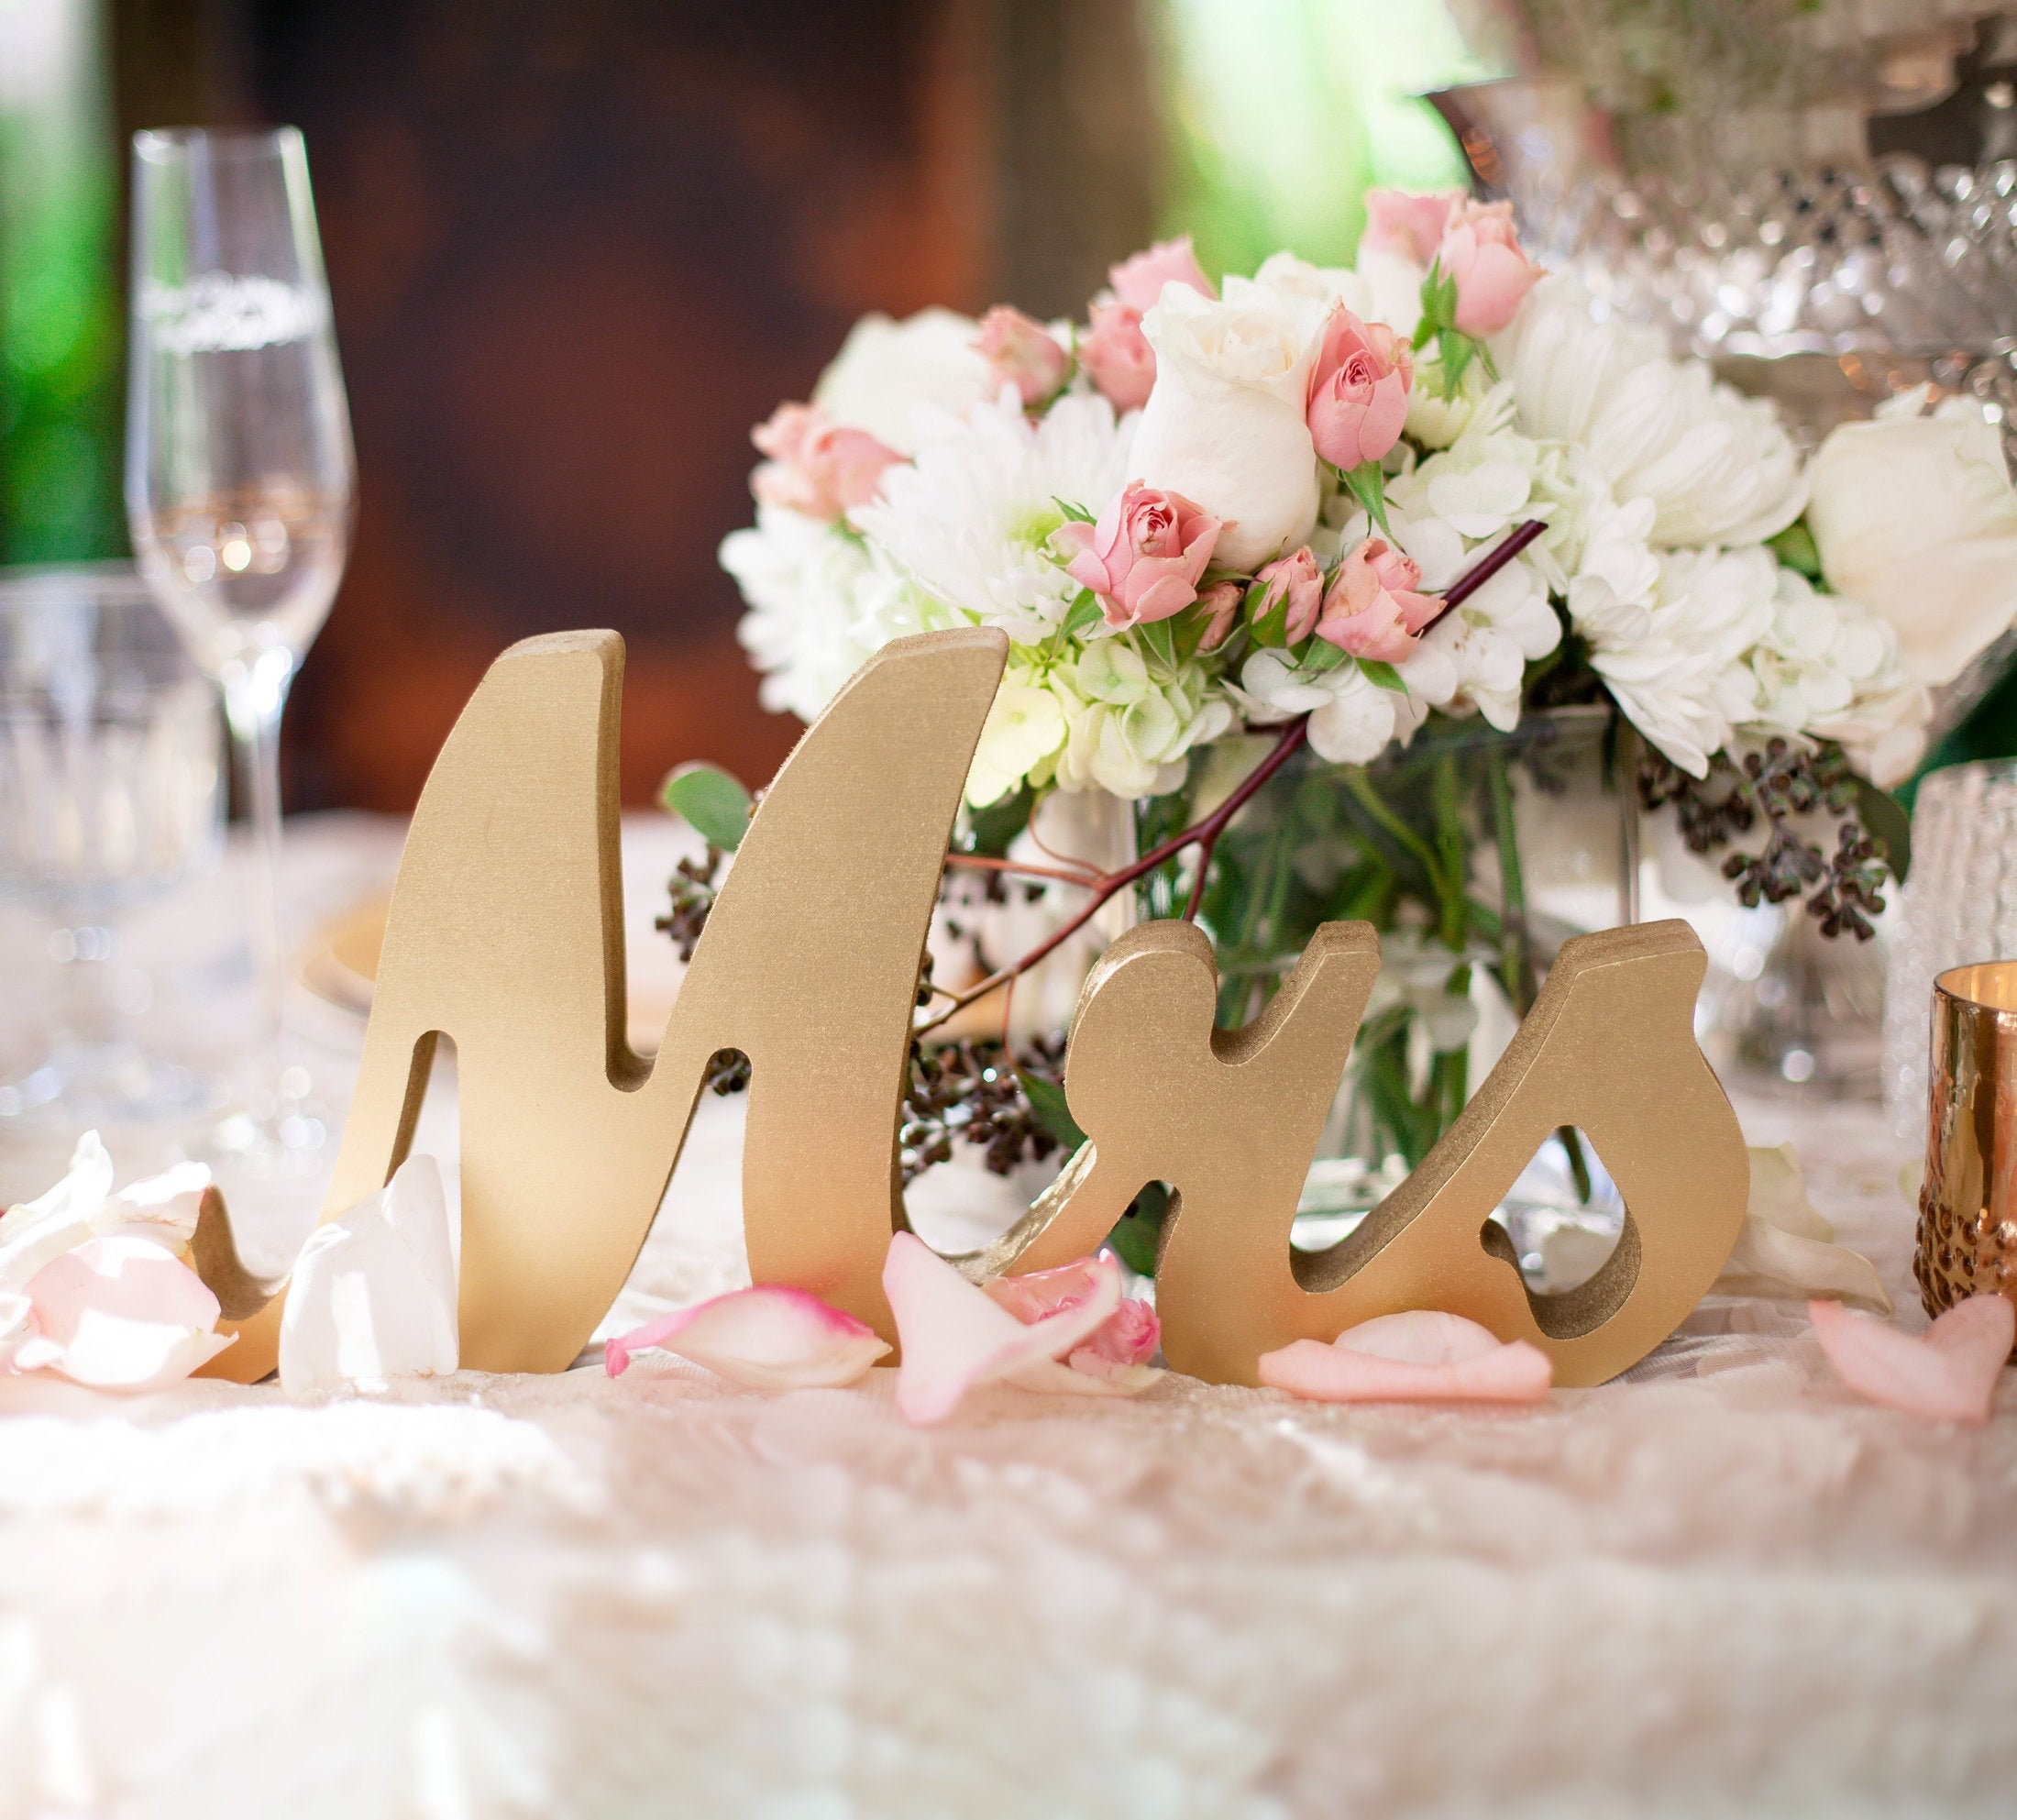 White Gray Rustic Wedding  Home Decor Silver Glitter Painted Wood Lettering Rustic Wooden Mr /& Mrs Decor